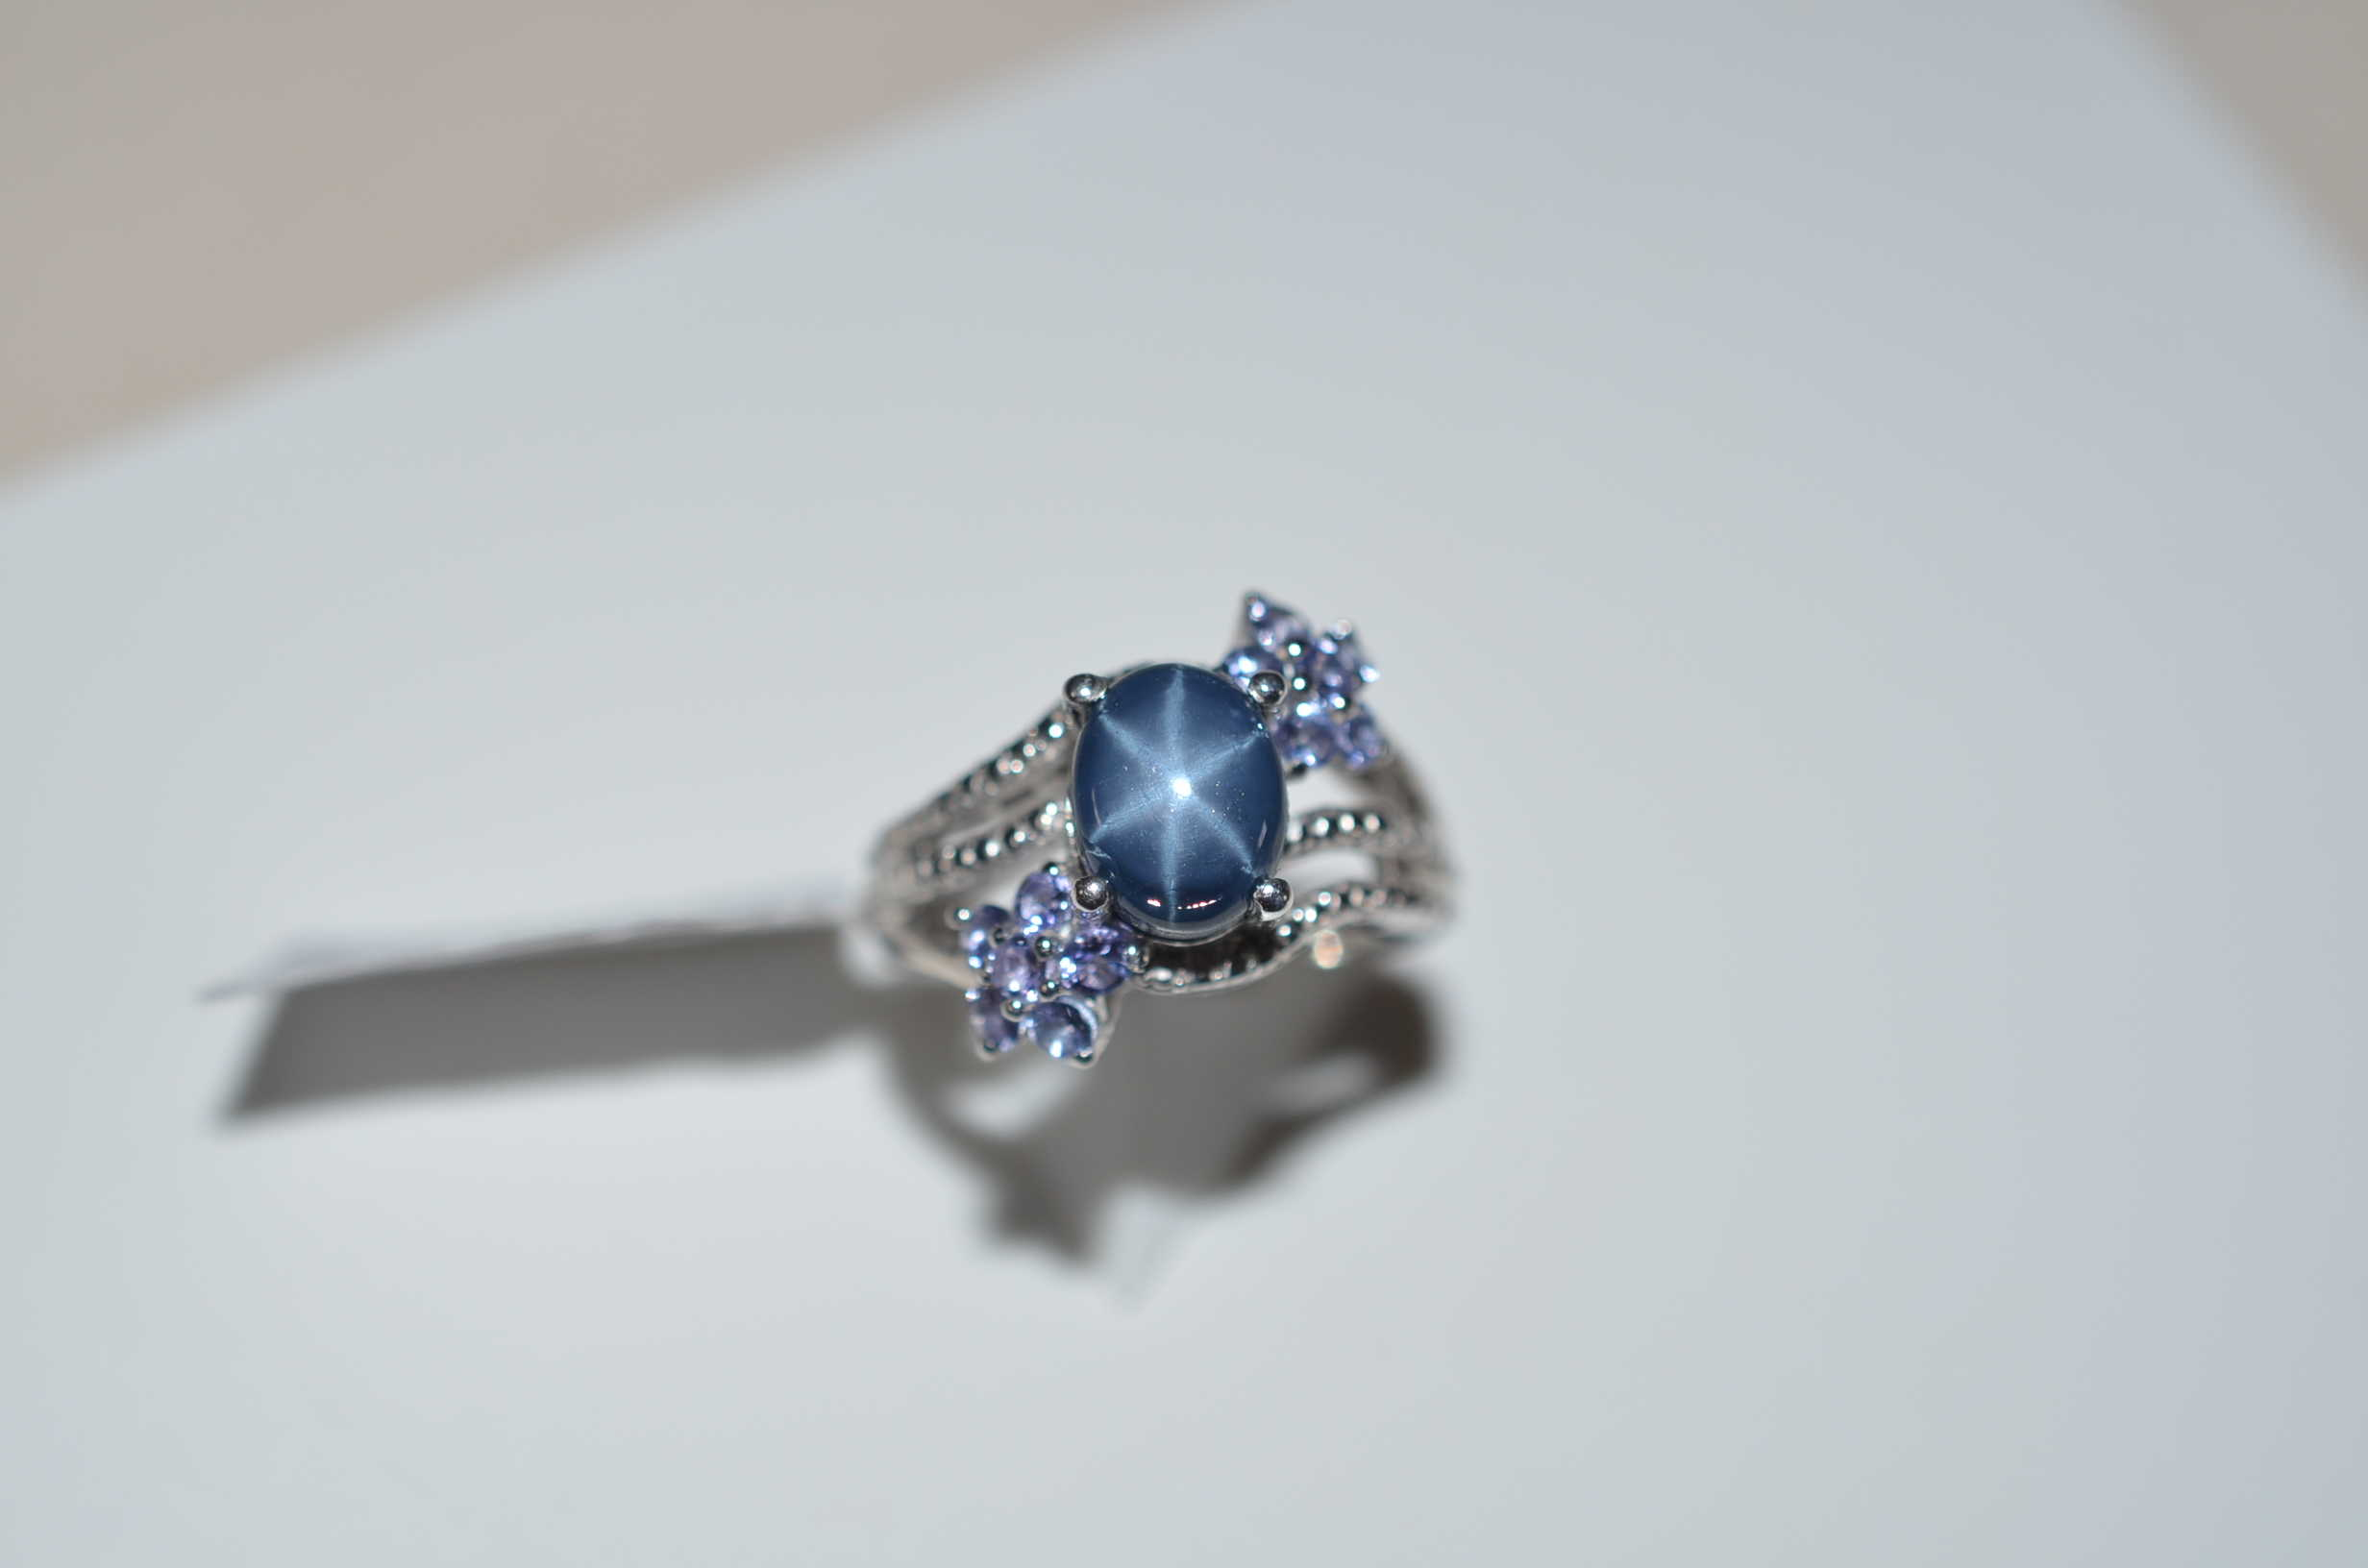 ceylon alysha petite blue aaa diamond white promise cut products sapphire whitfield sterling engagement ring palladium anniversary mother simple s yellow rings gold silver